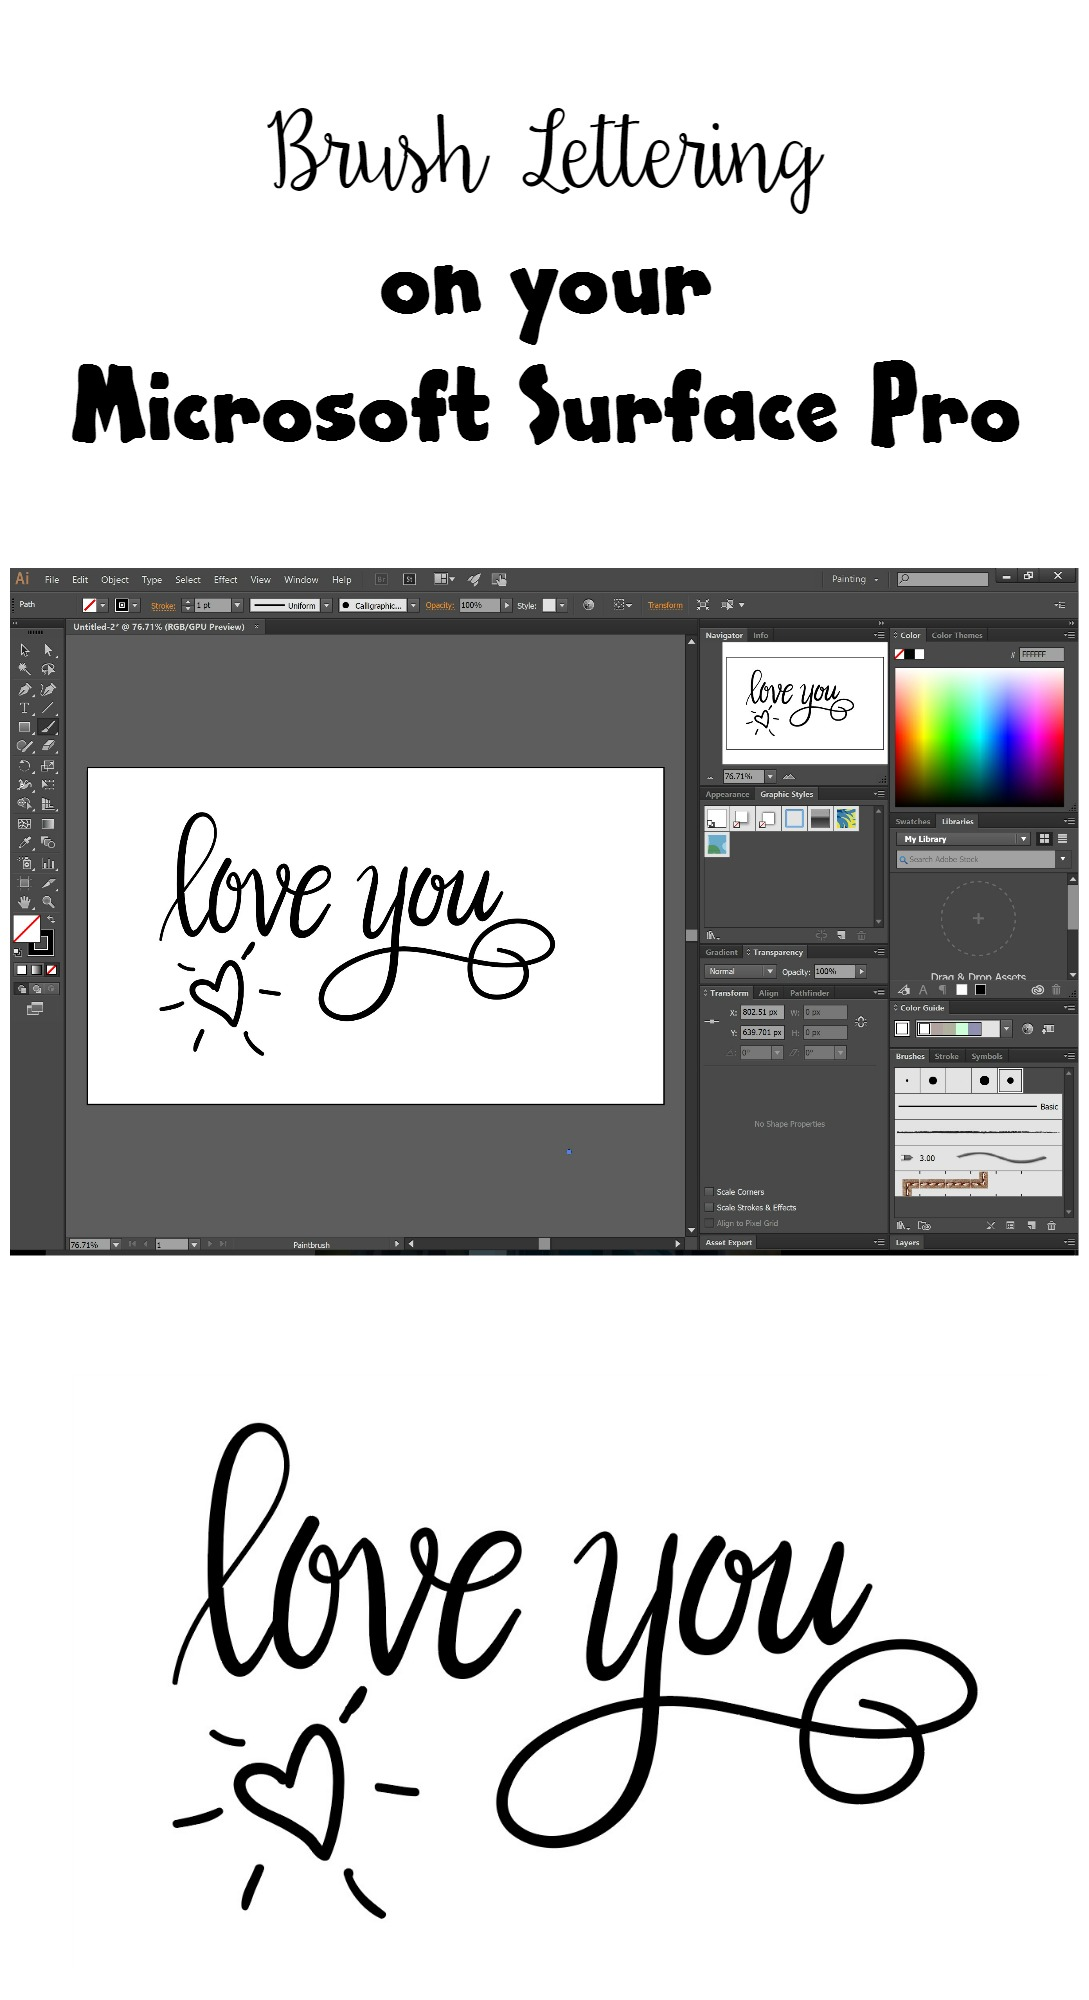 Brush Lettering on the Microsoft Surface Pro